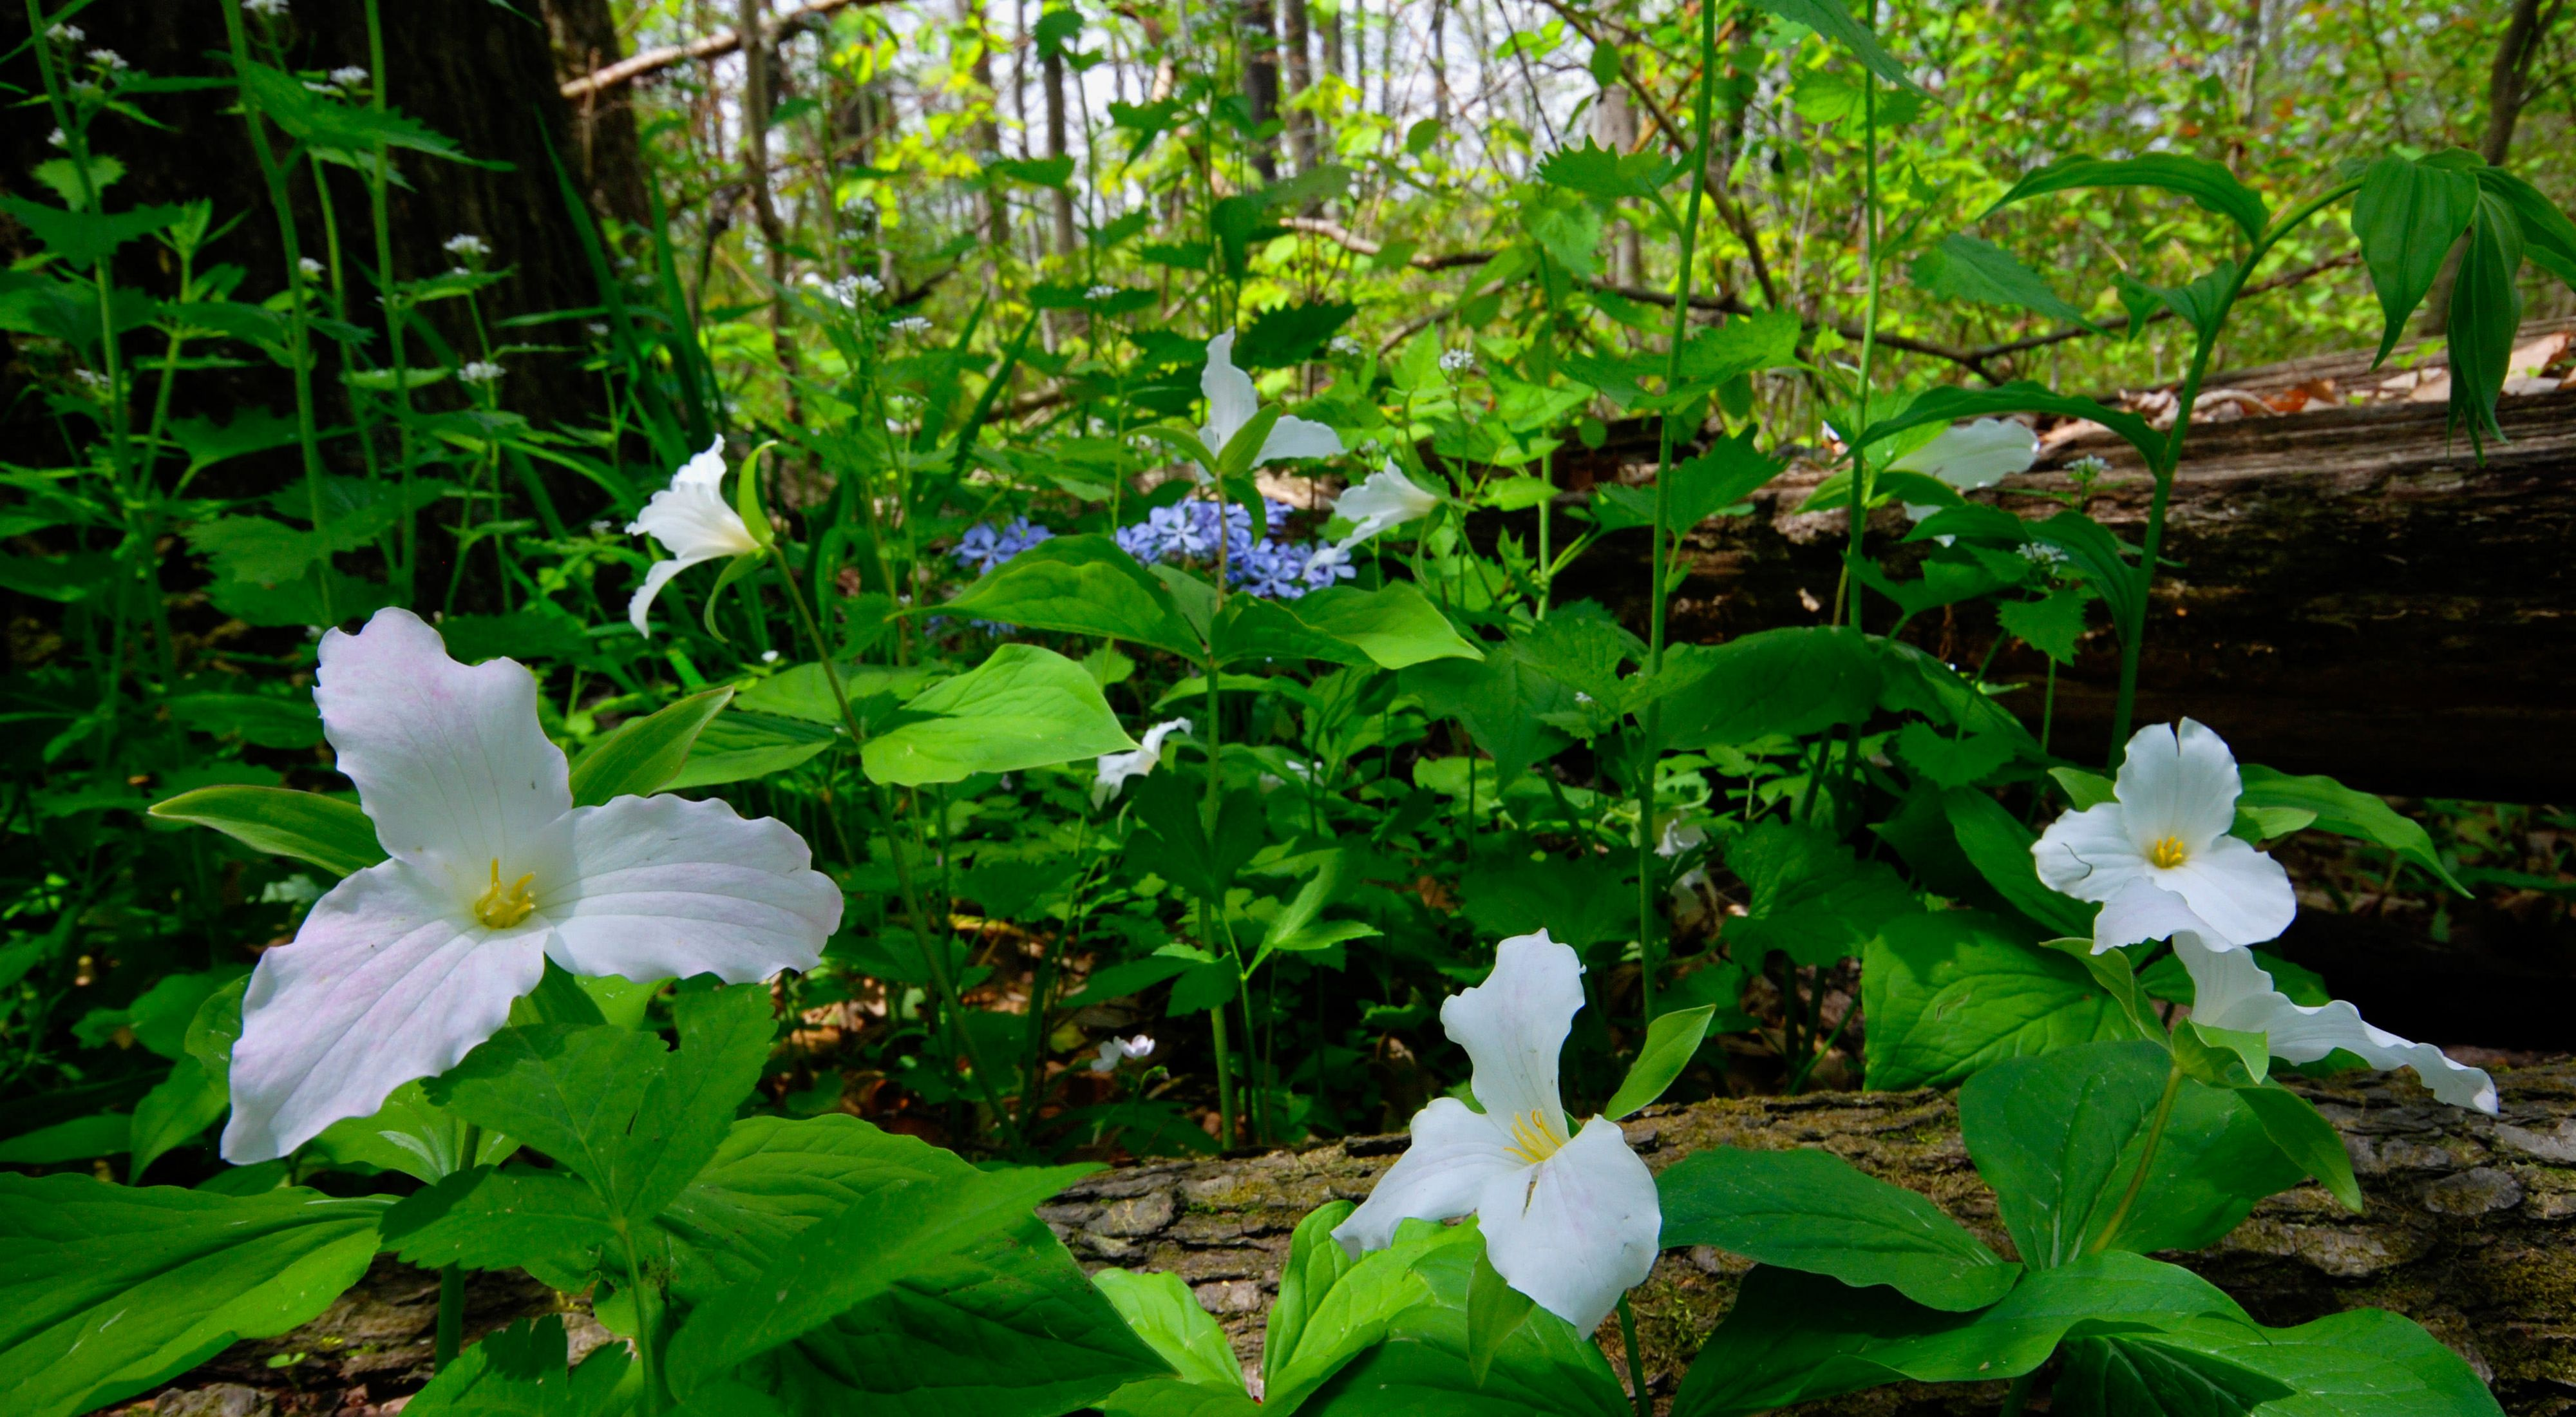 Large, white, three-petaled flowers sit atop spring-green foliage along the forest floor.